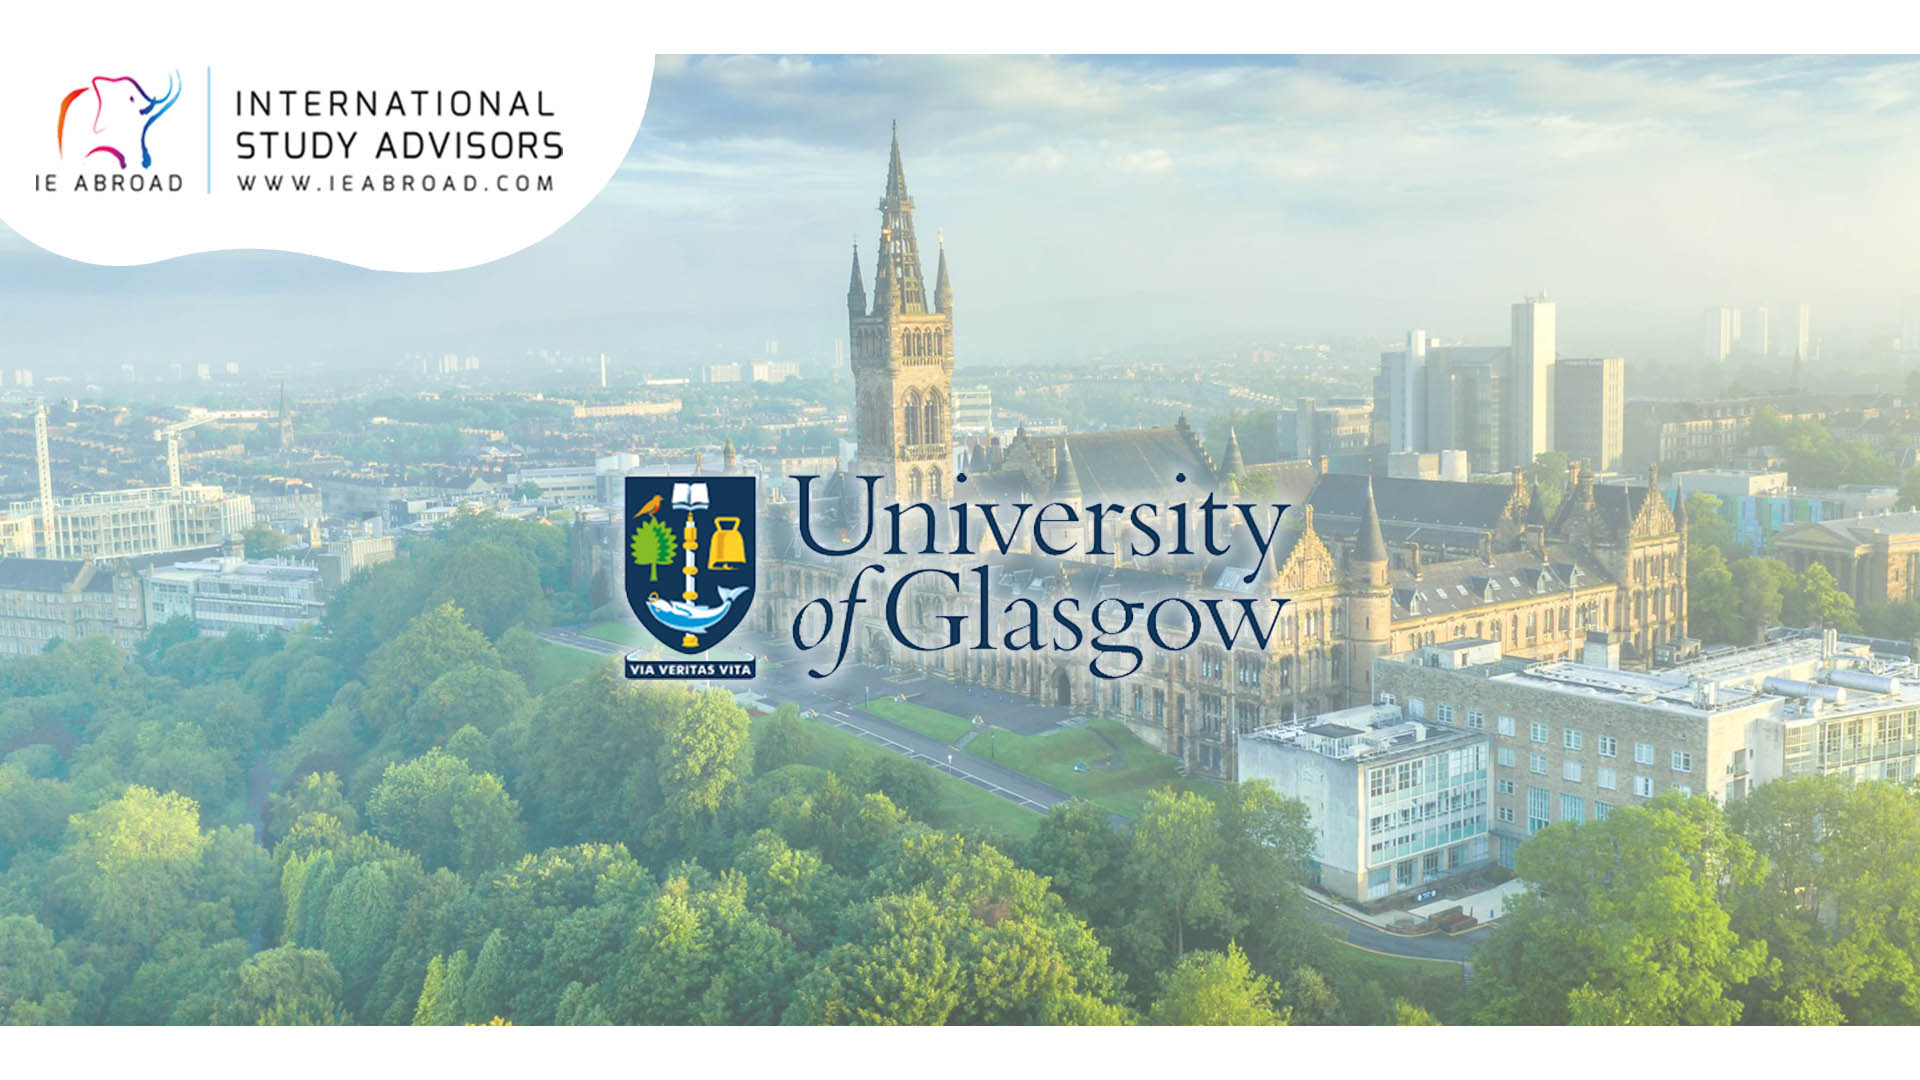 Fast & Curious: University of Glasgow